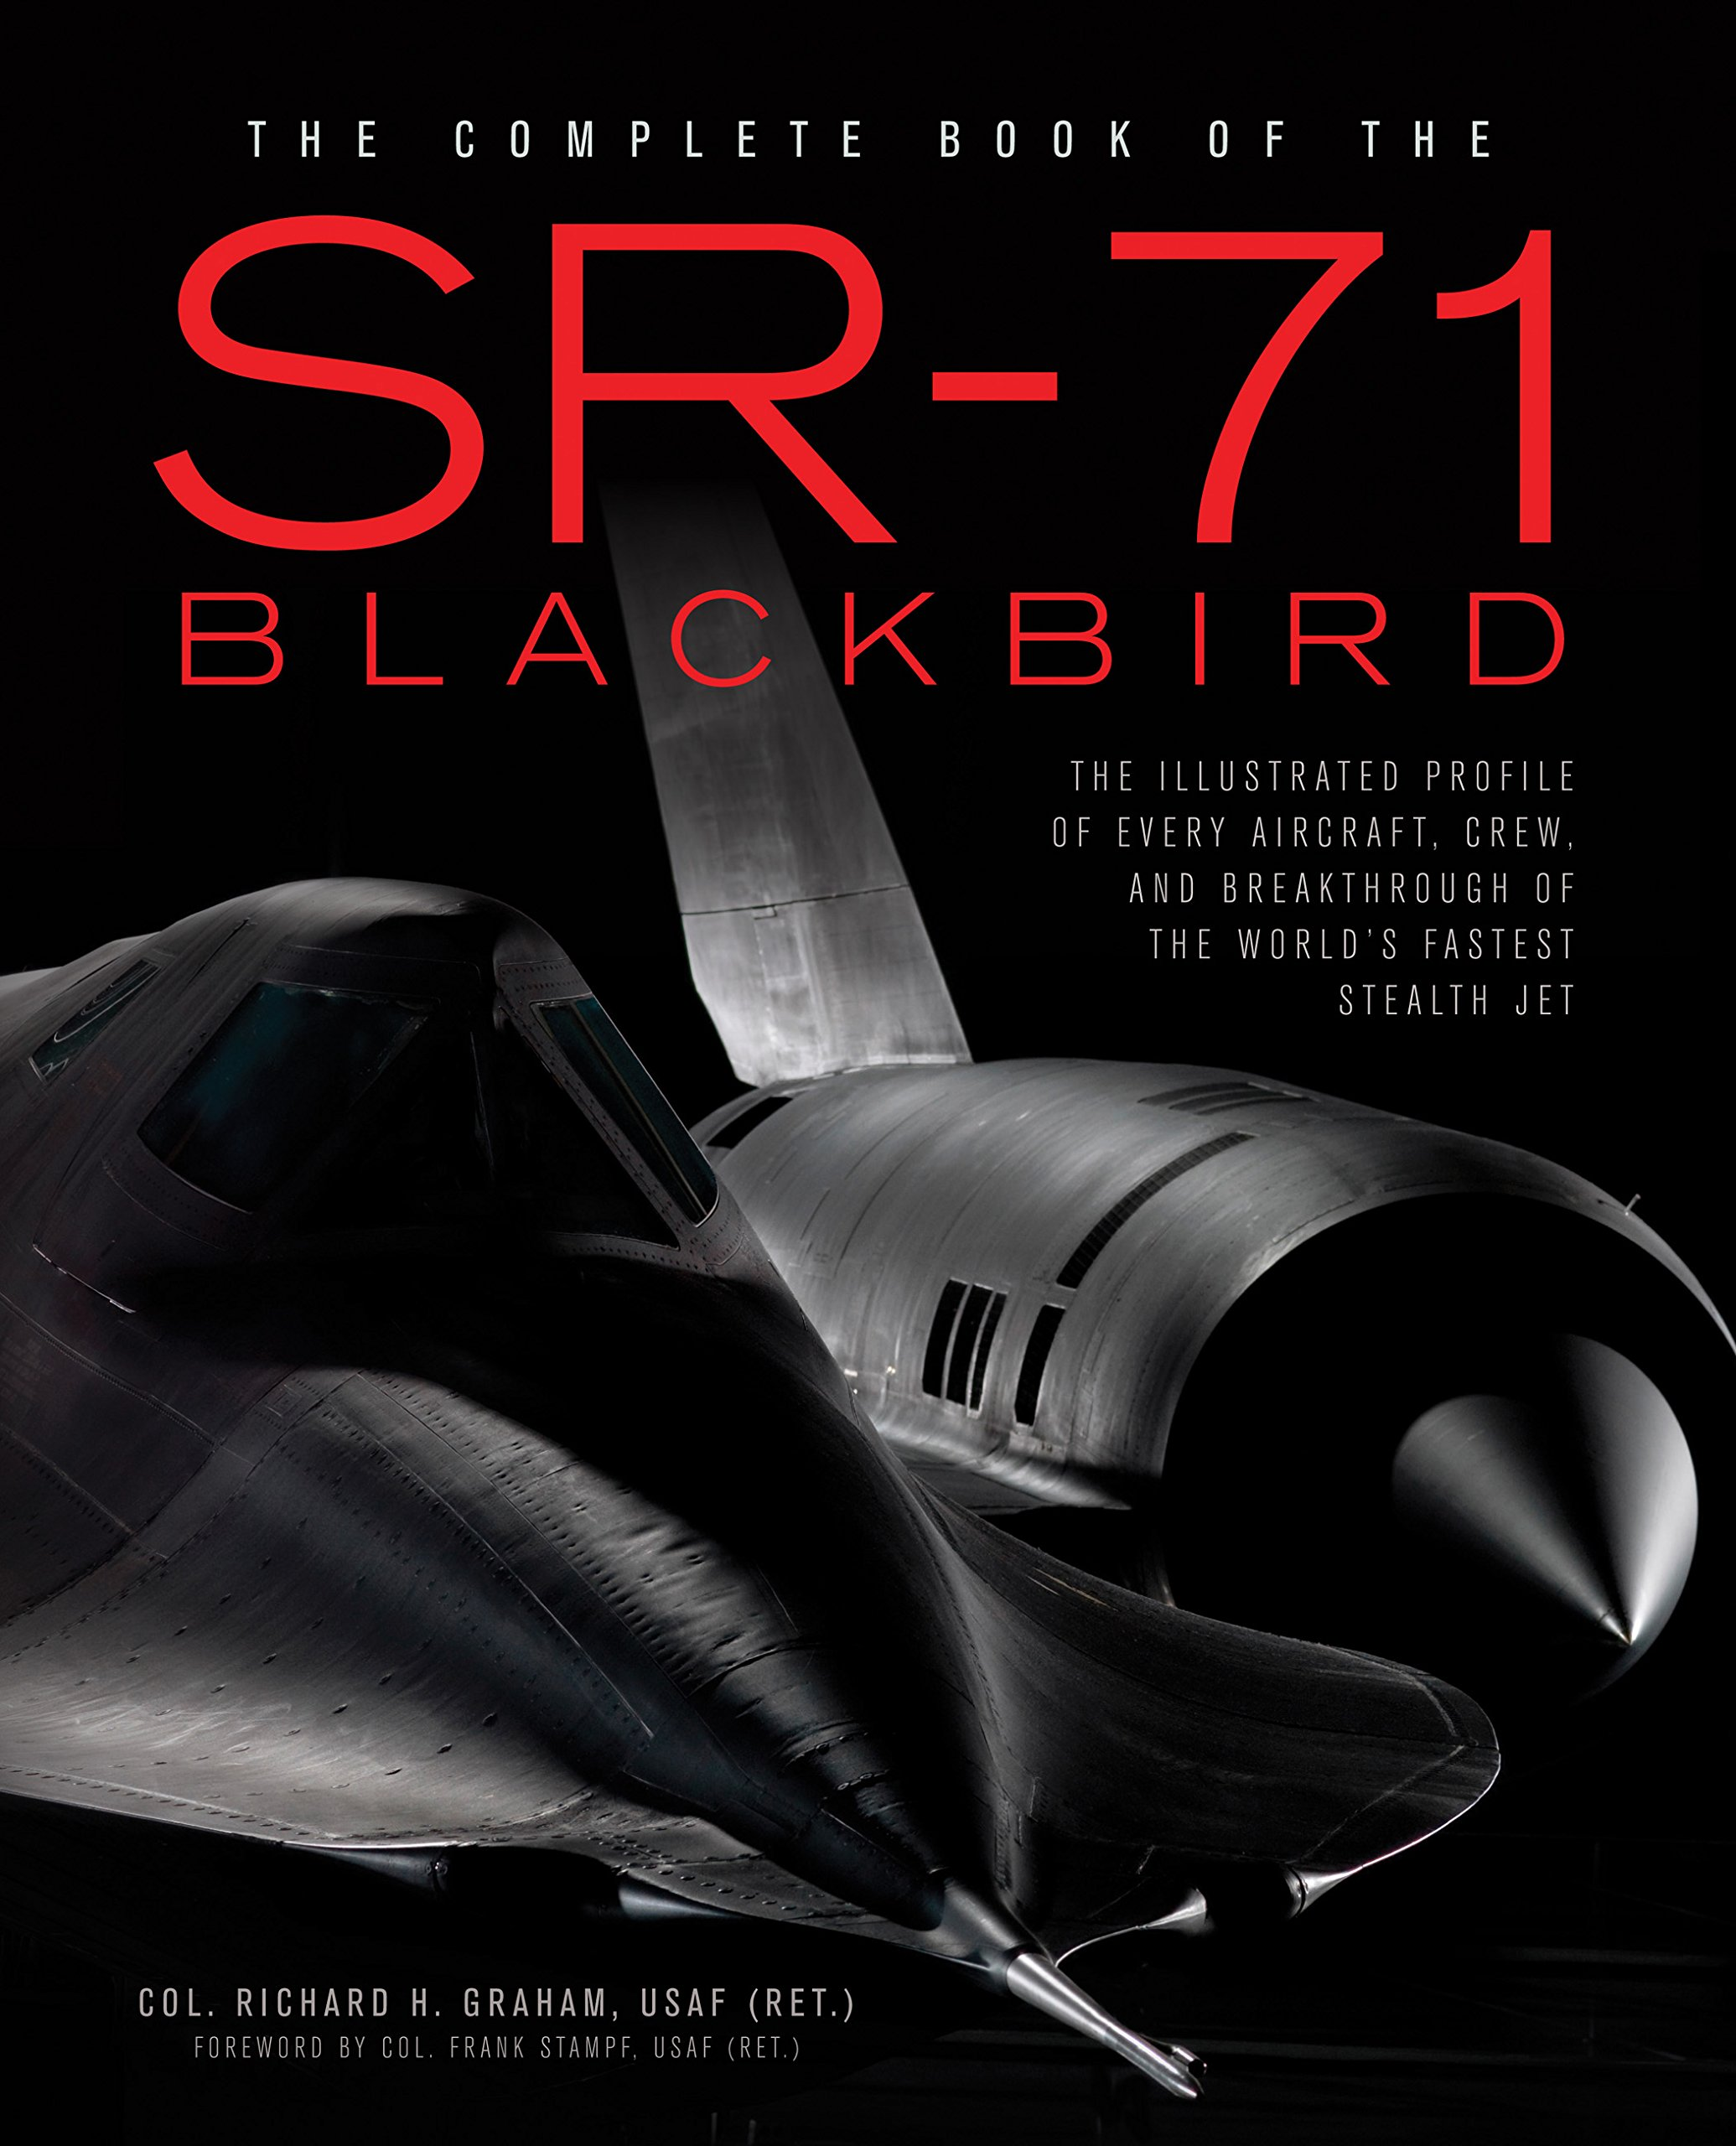 The Complete Book Of The SR-71 Blackbird: The Illustrated Profile Of Every Aircraft, Crew, And Breakthrough Of The World's...